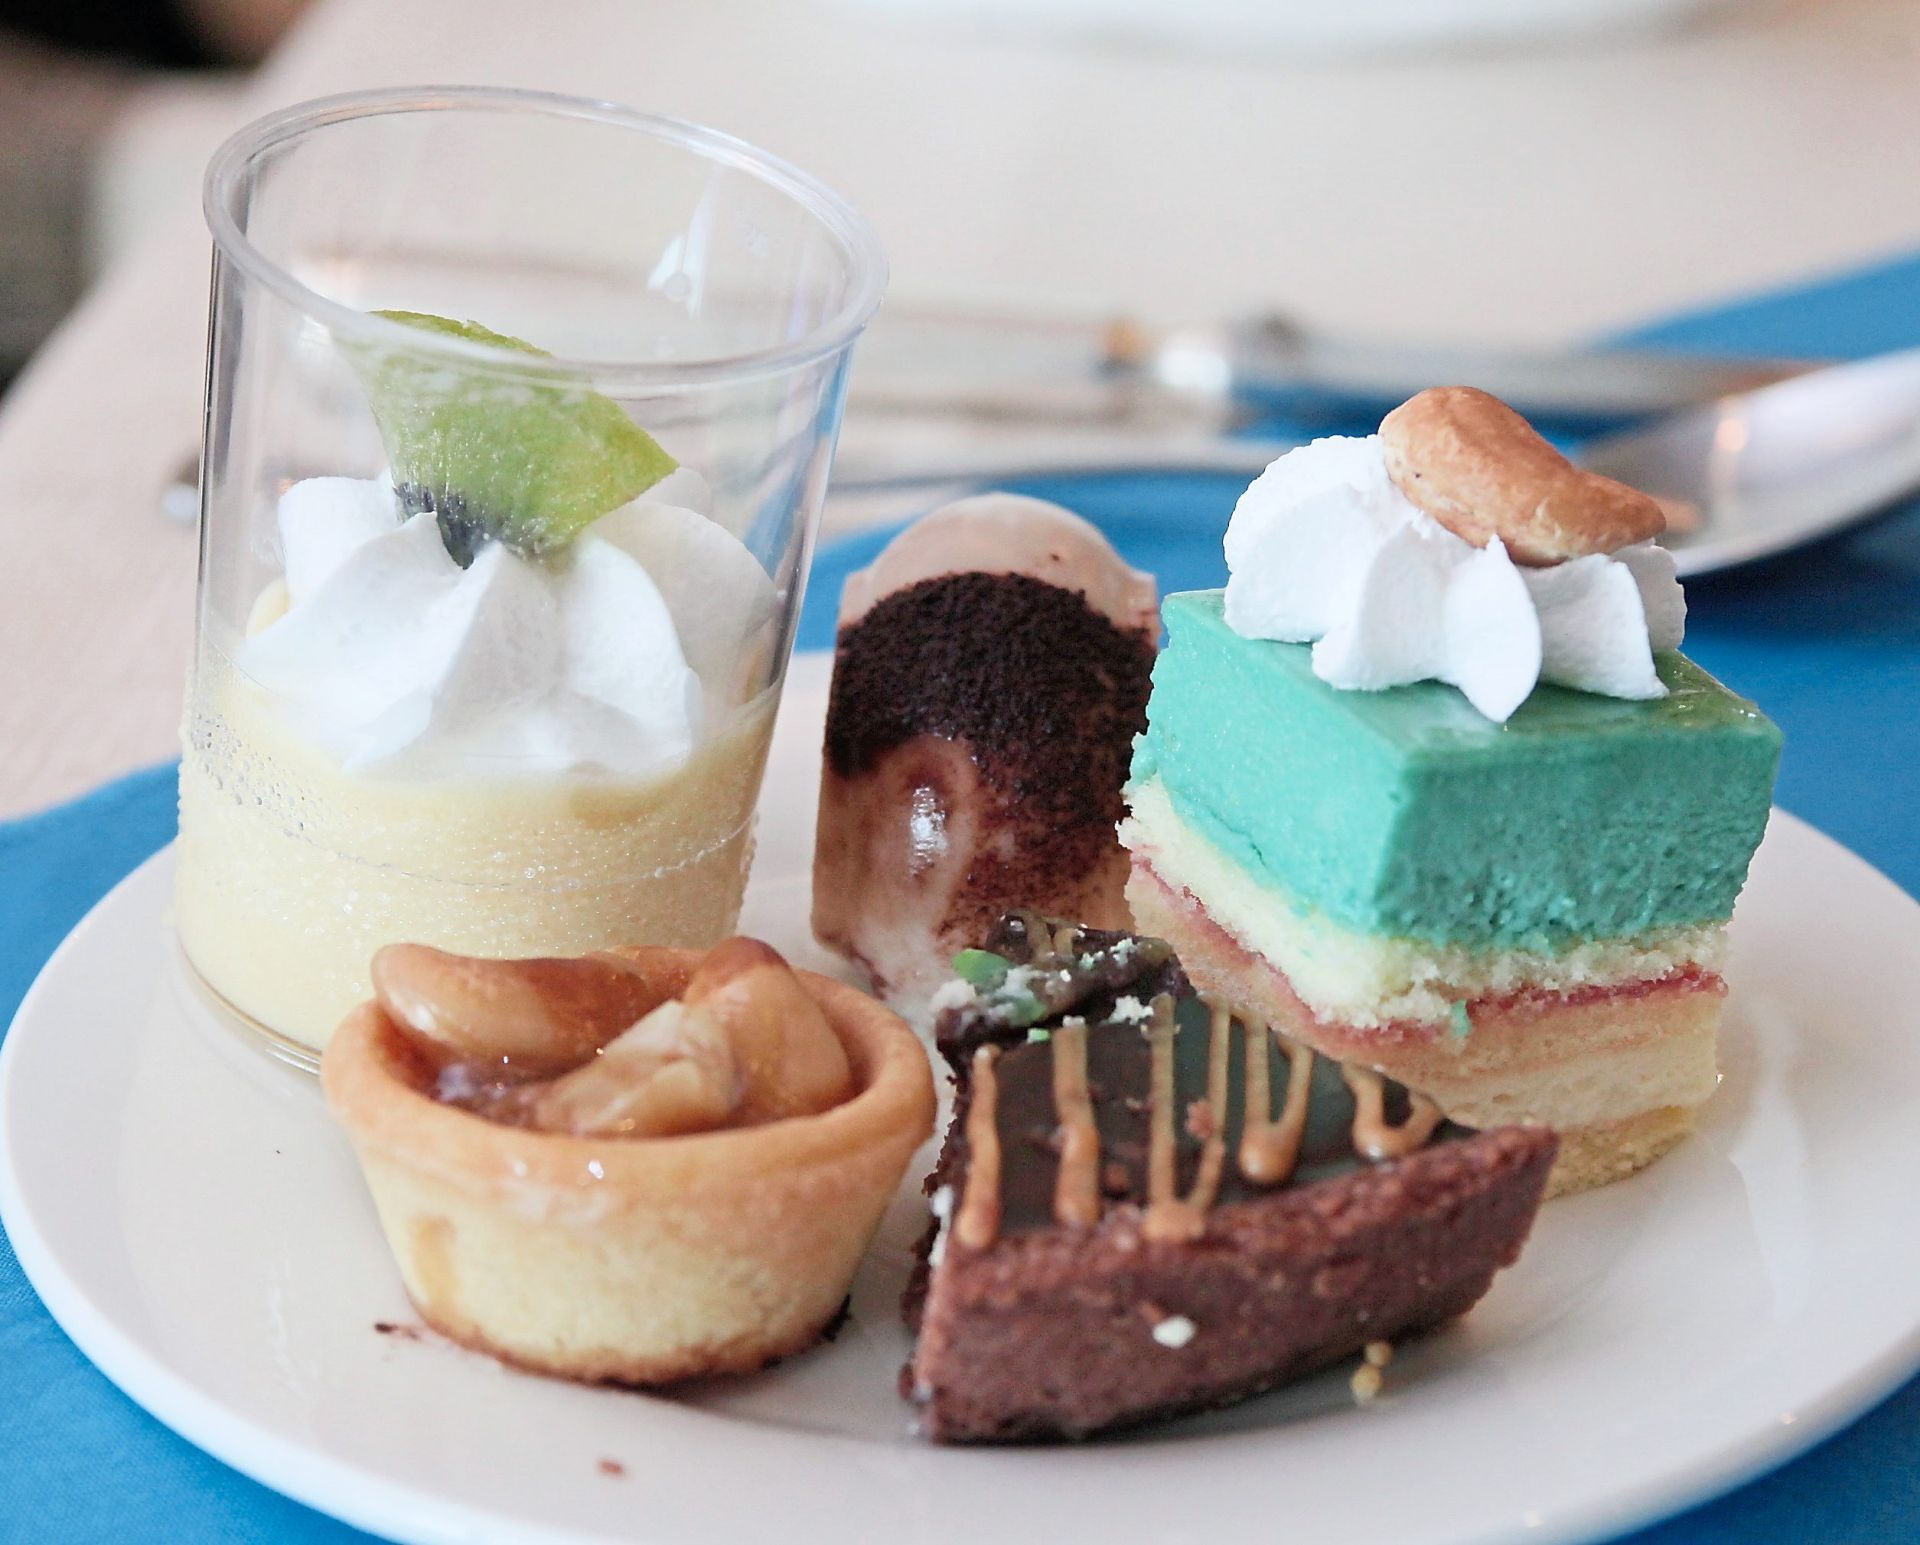 You can still eat sweets and desserts if you're diabetic but do so in moderation. — Filepic